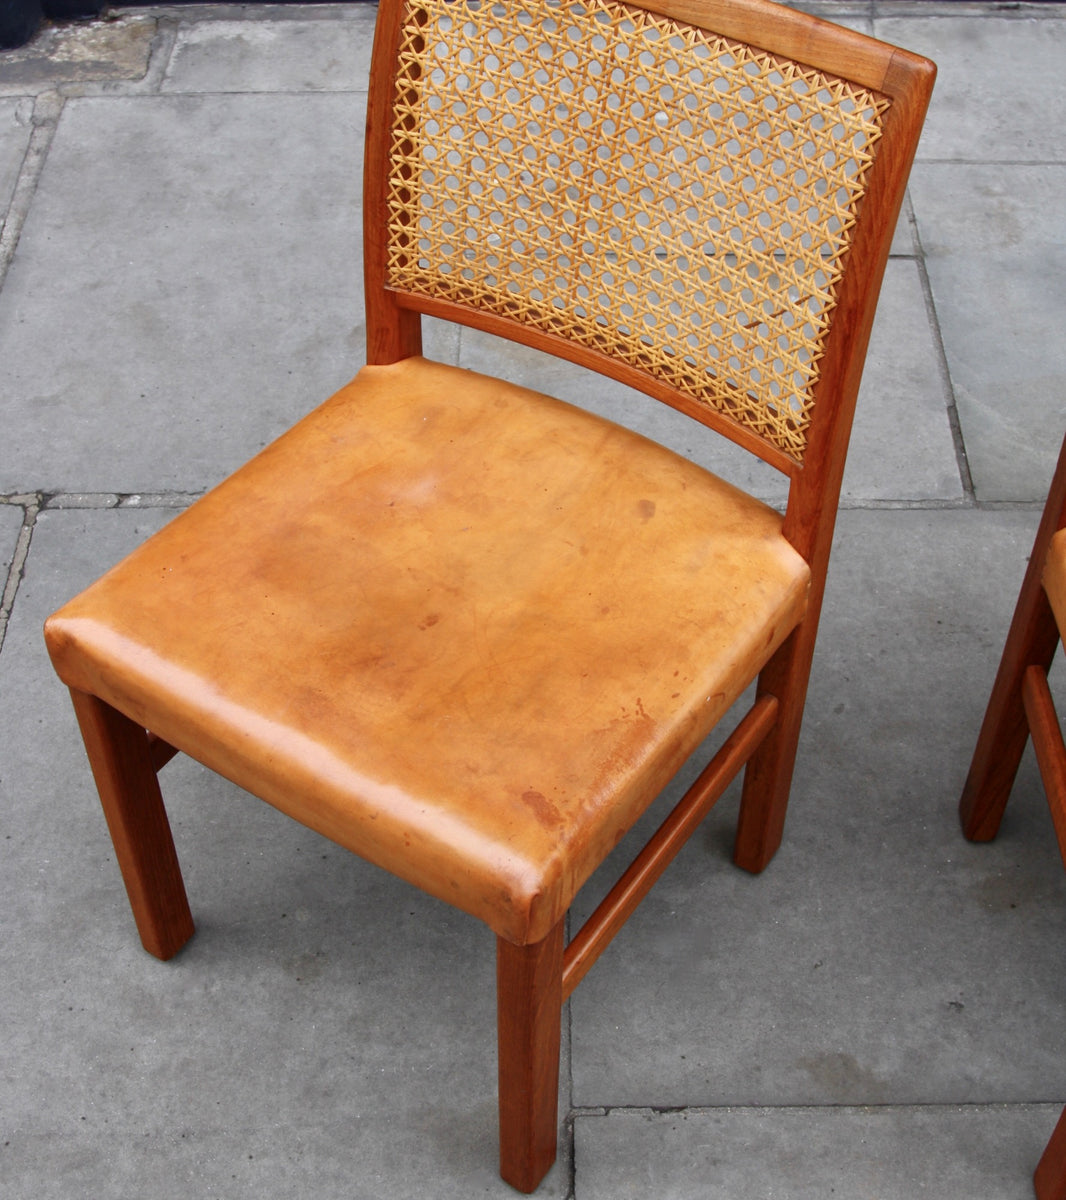 Four Teak, Leather & Cane Chairs Carl-Gustav Hiort af Ornäs  - Image 10